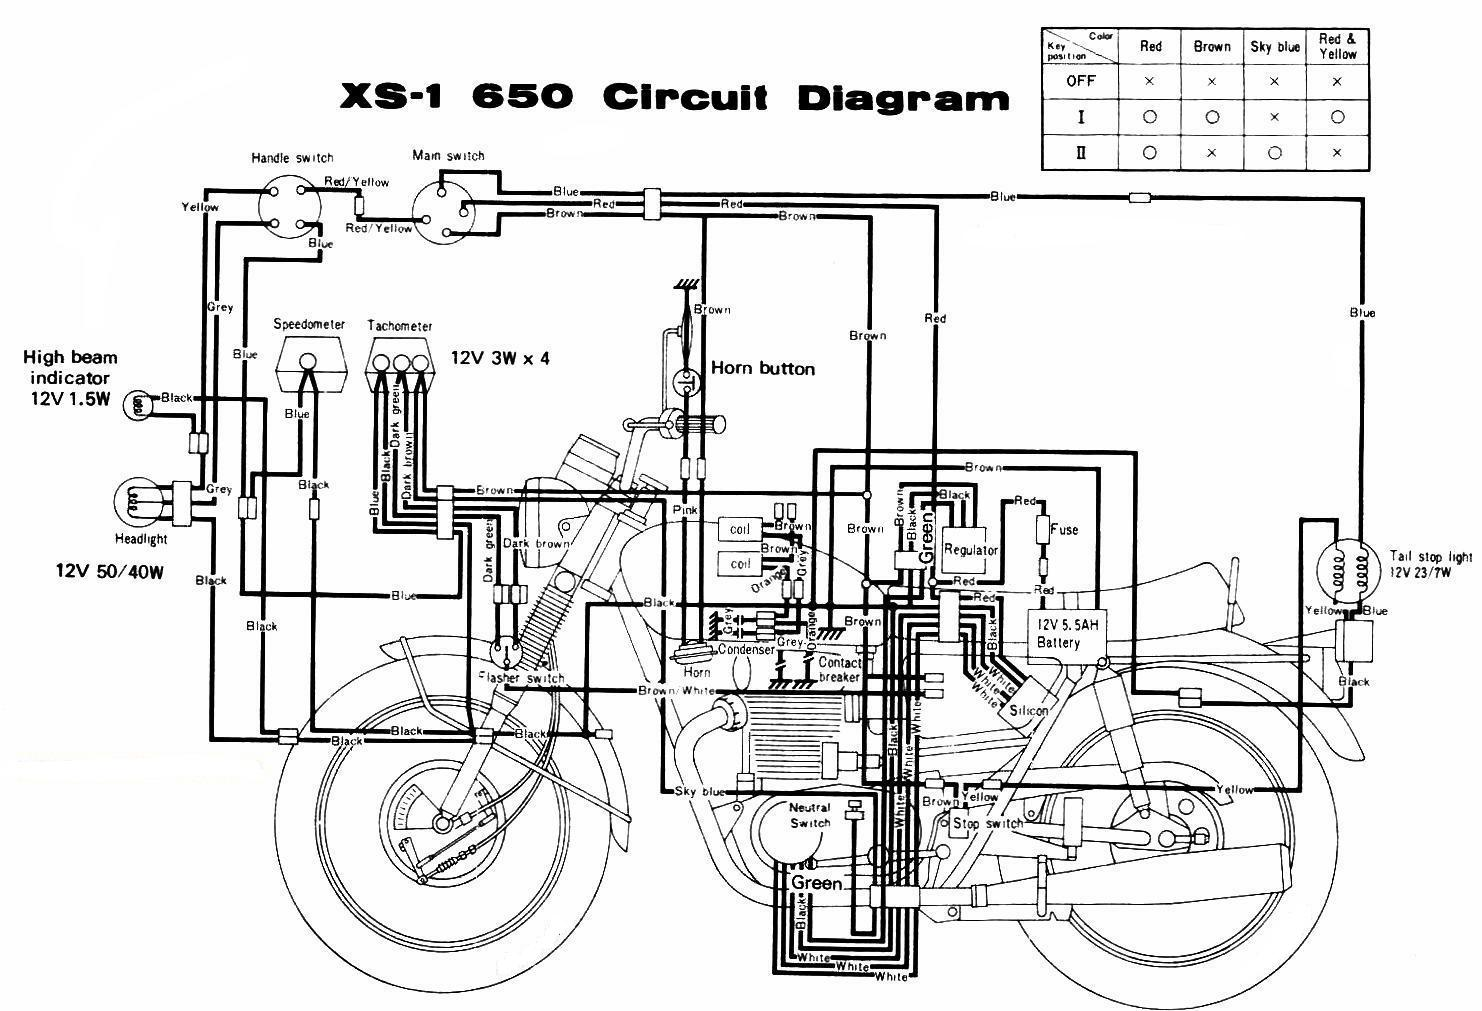 wiring diagrams rh oregonmotorcycleparts com e bike controller wiring  diagram pdf hero bike wiring diagram pdf